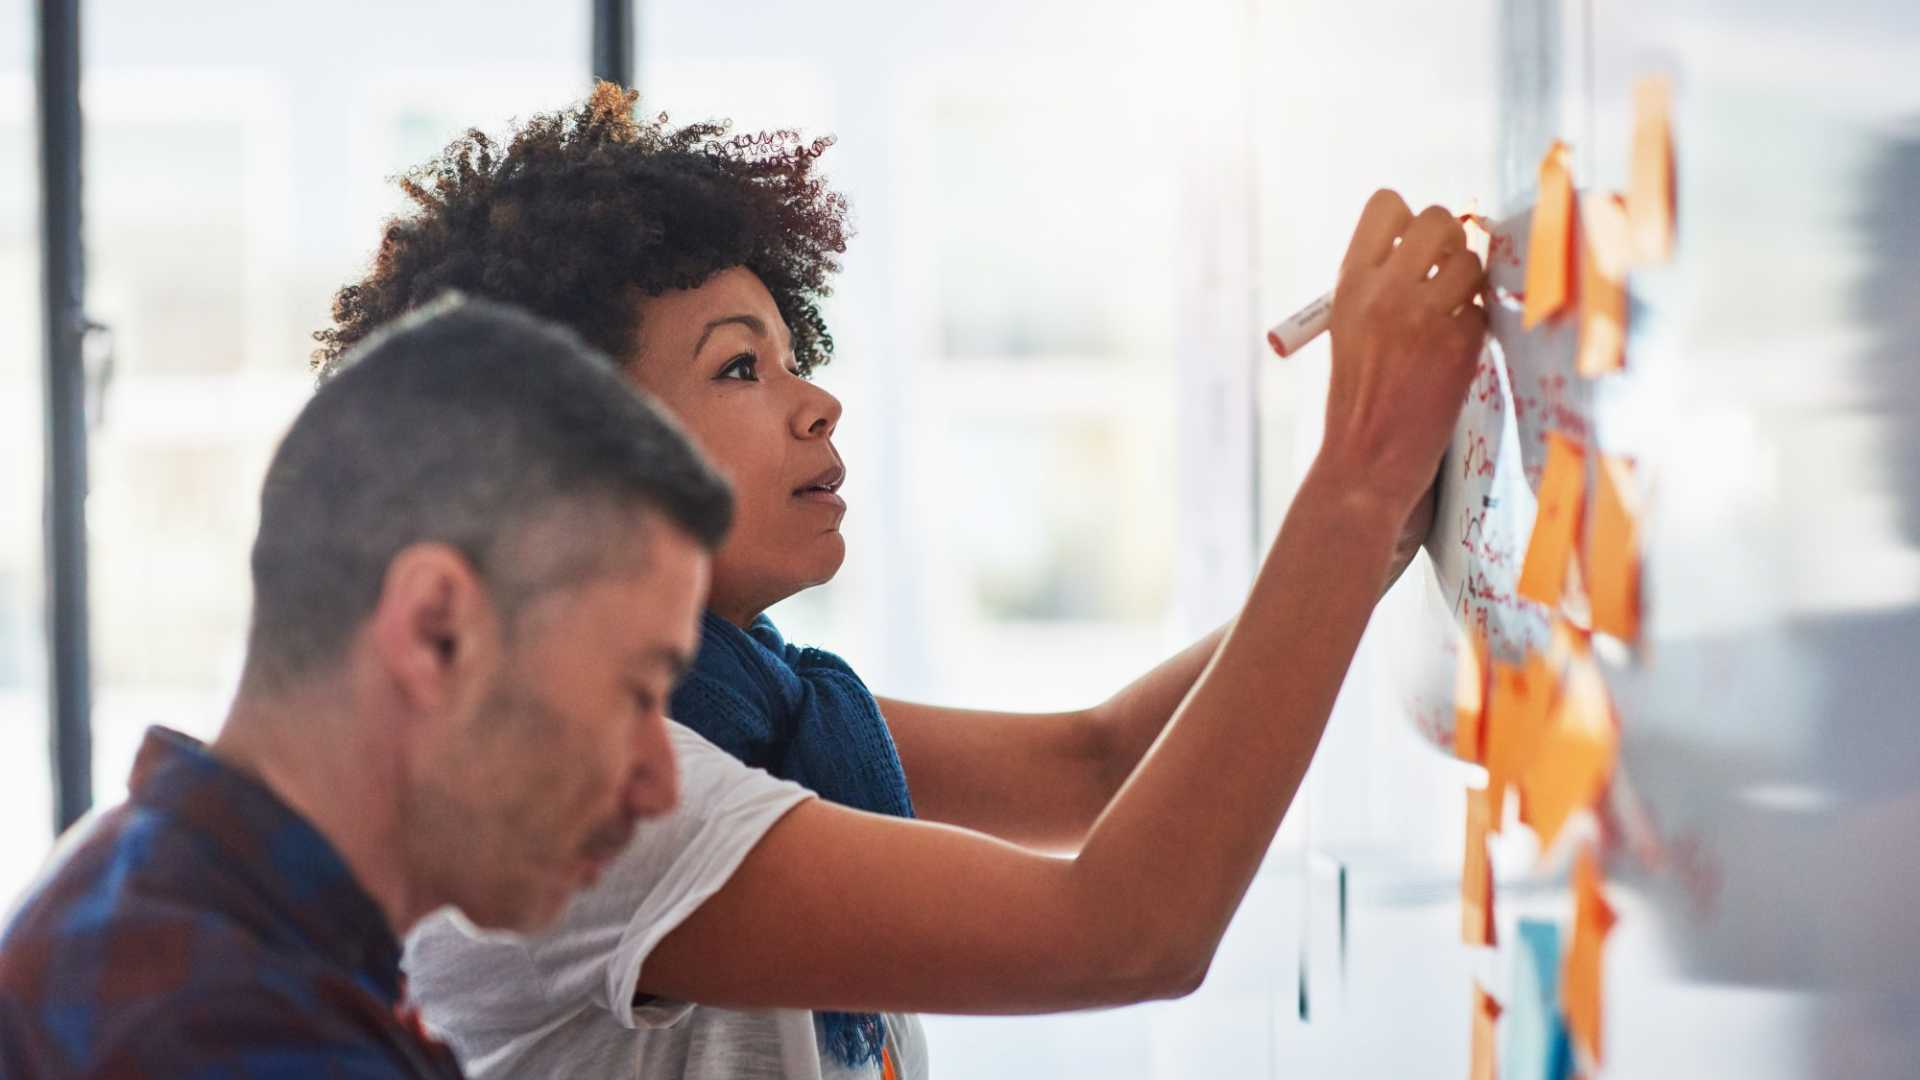 6-Step Process to Evaluate New Startup Ideas According to Your Strengths